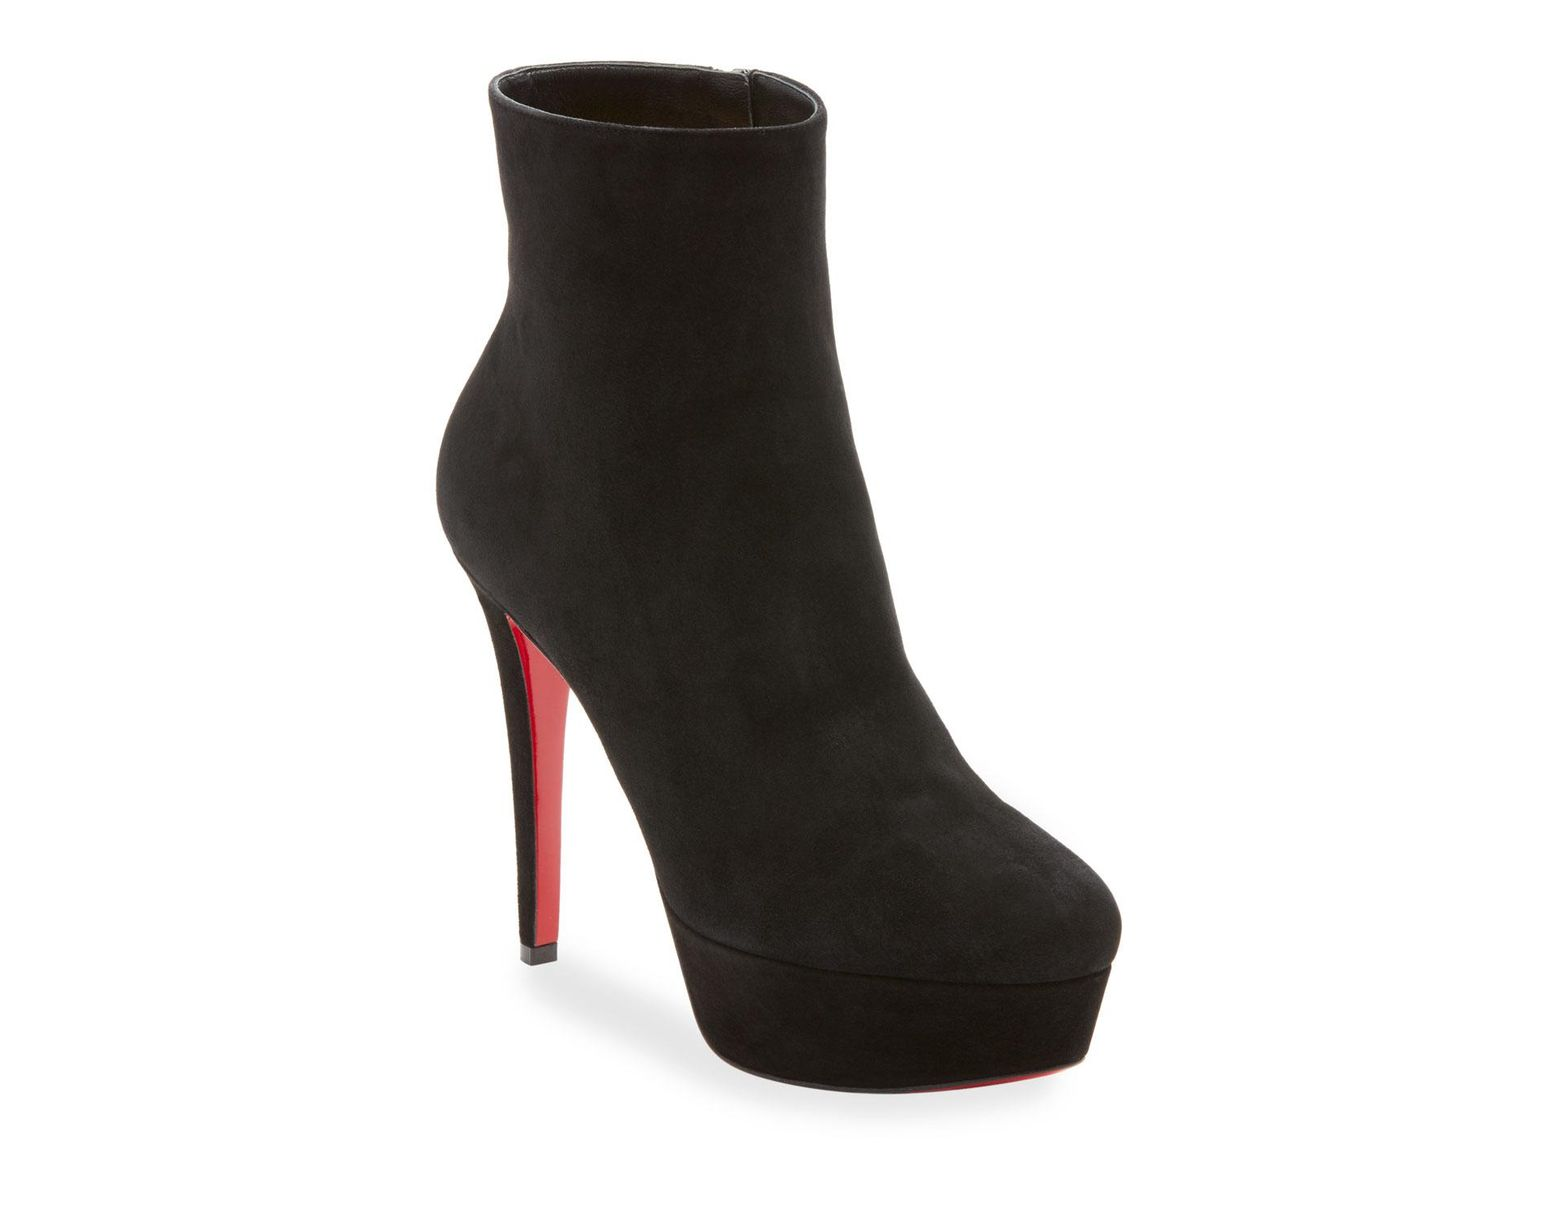 153094e5ba9 Christian Louboutin Bianca Suede Platform Red Sole Boot in Black ...